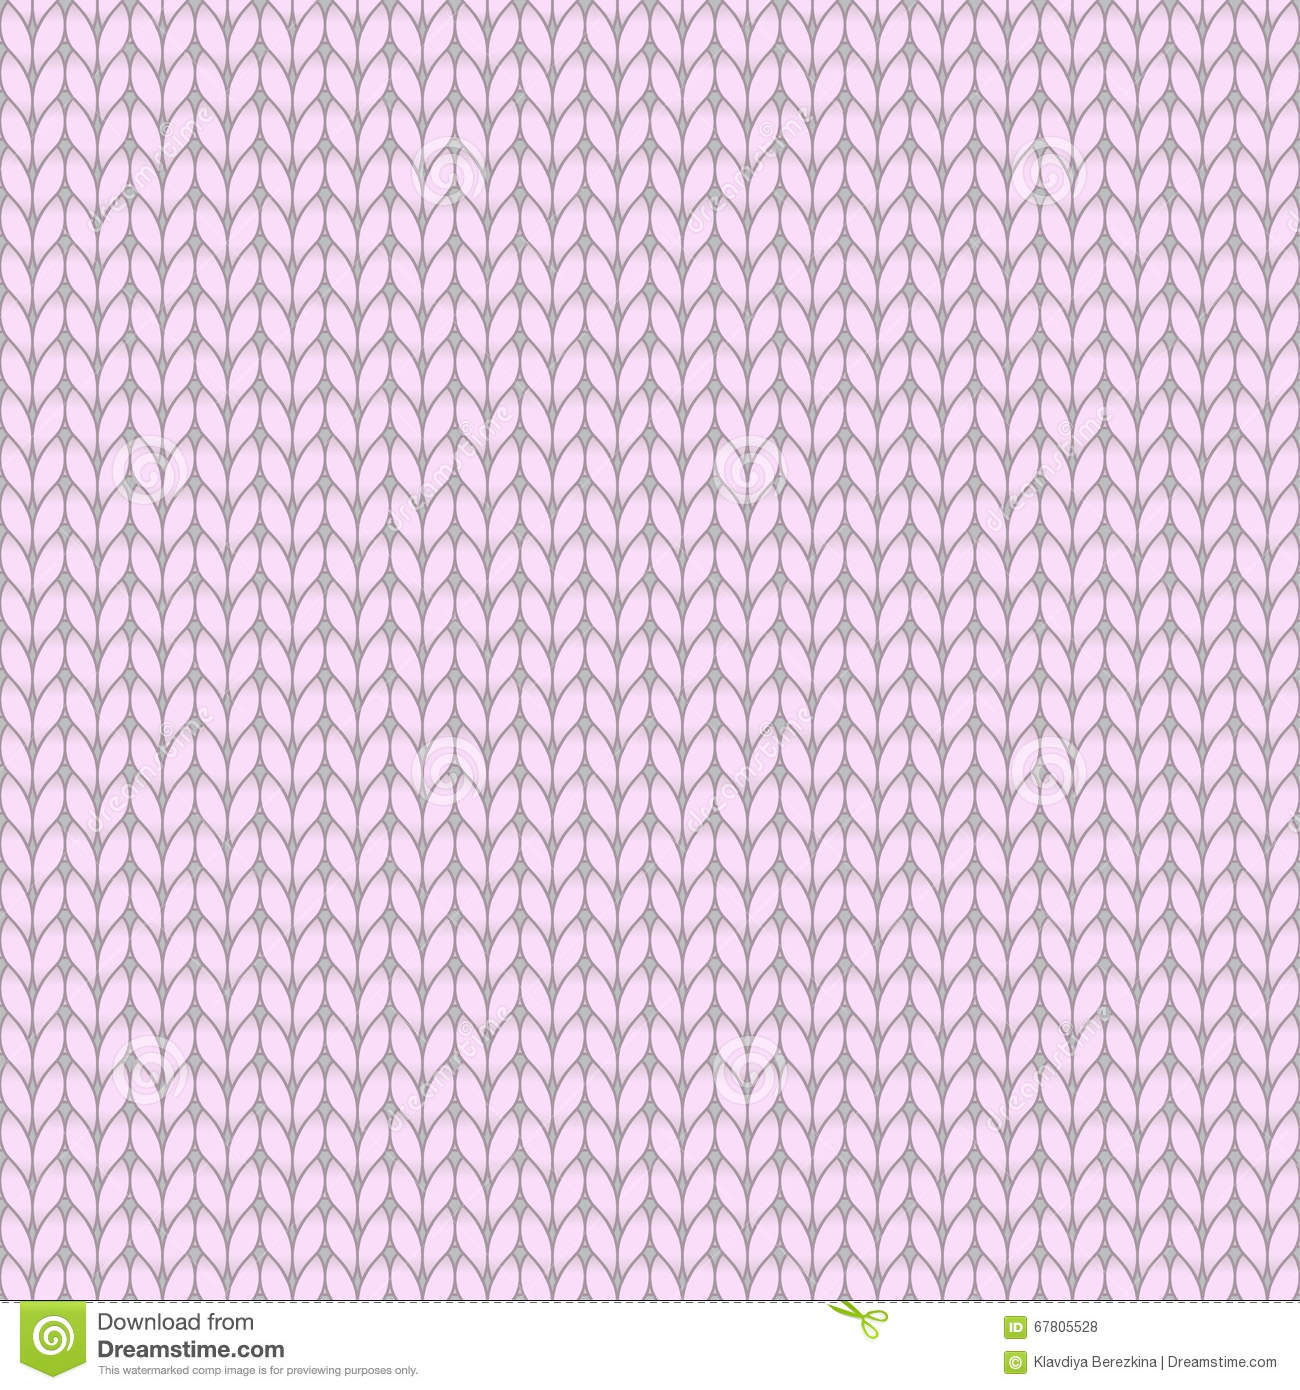 Knitting Stitch Orientation : Pink Knitted Seamless Pattern Cartoon Vector CartoonDealer.com #87792031